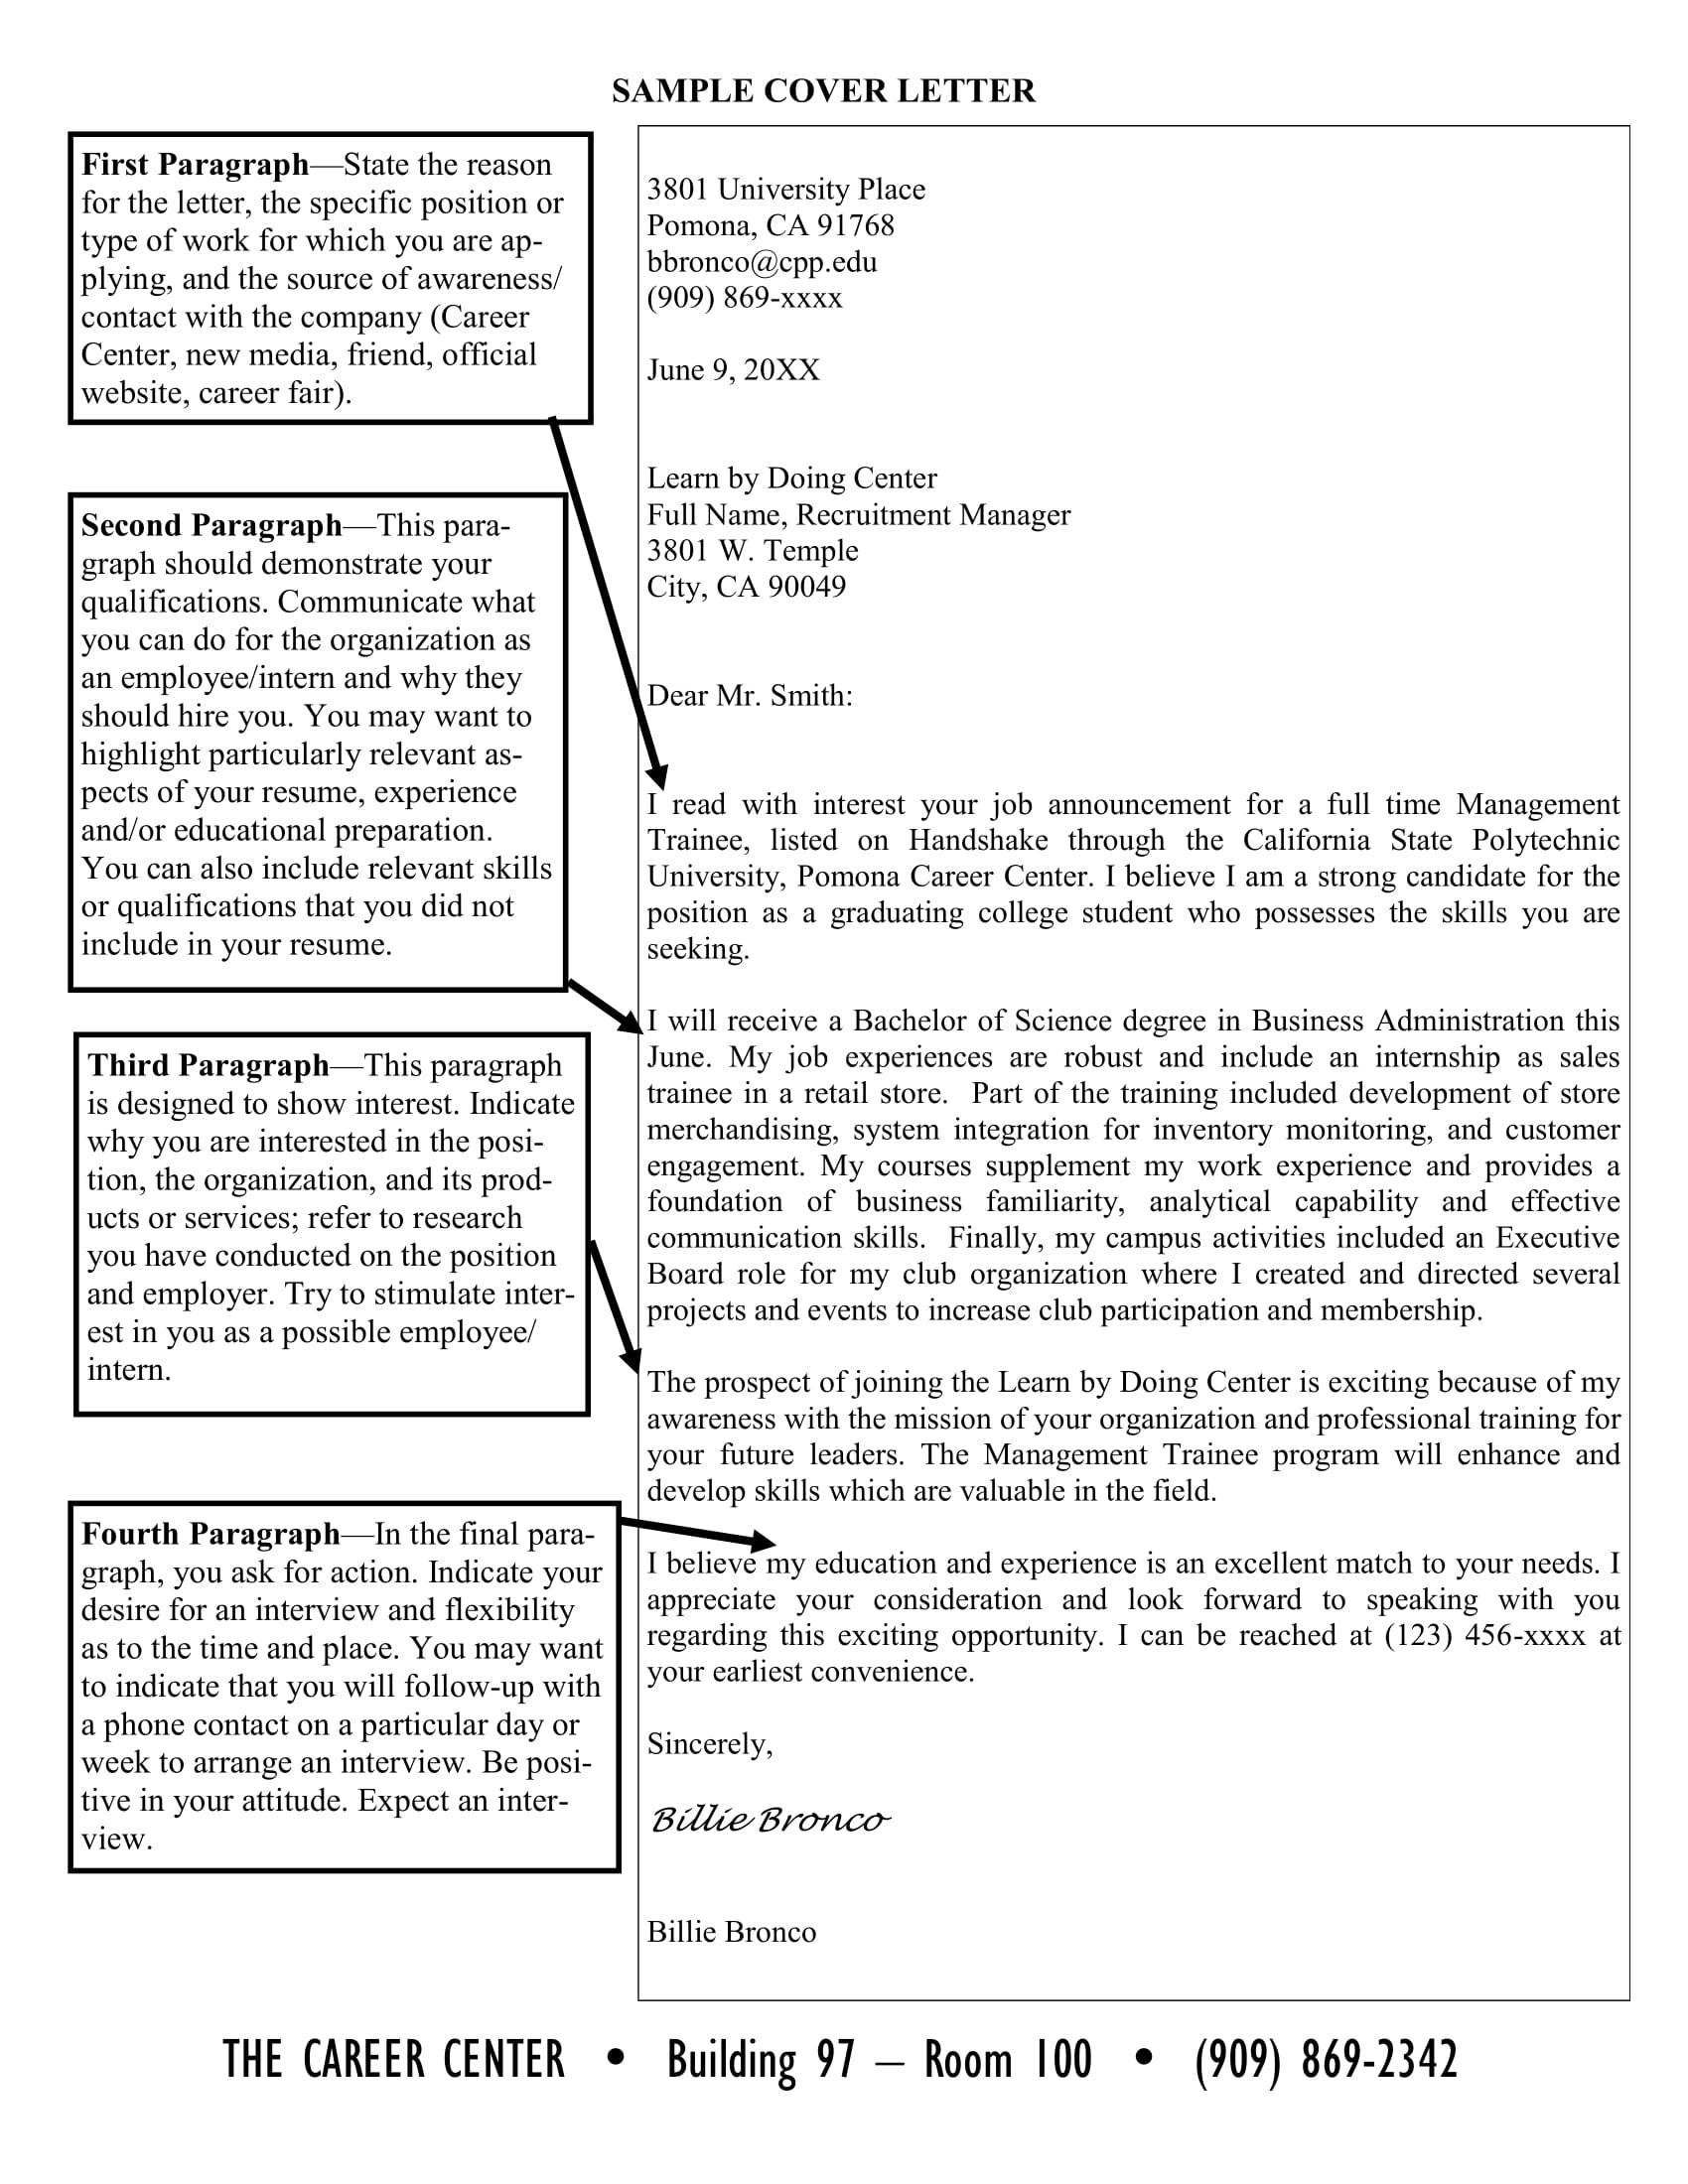 cover letter format example